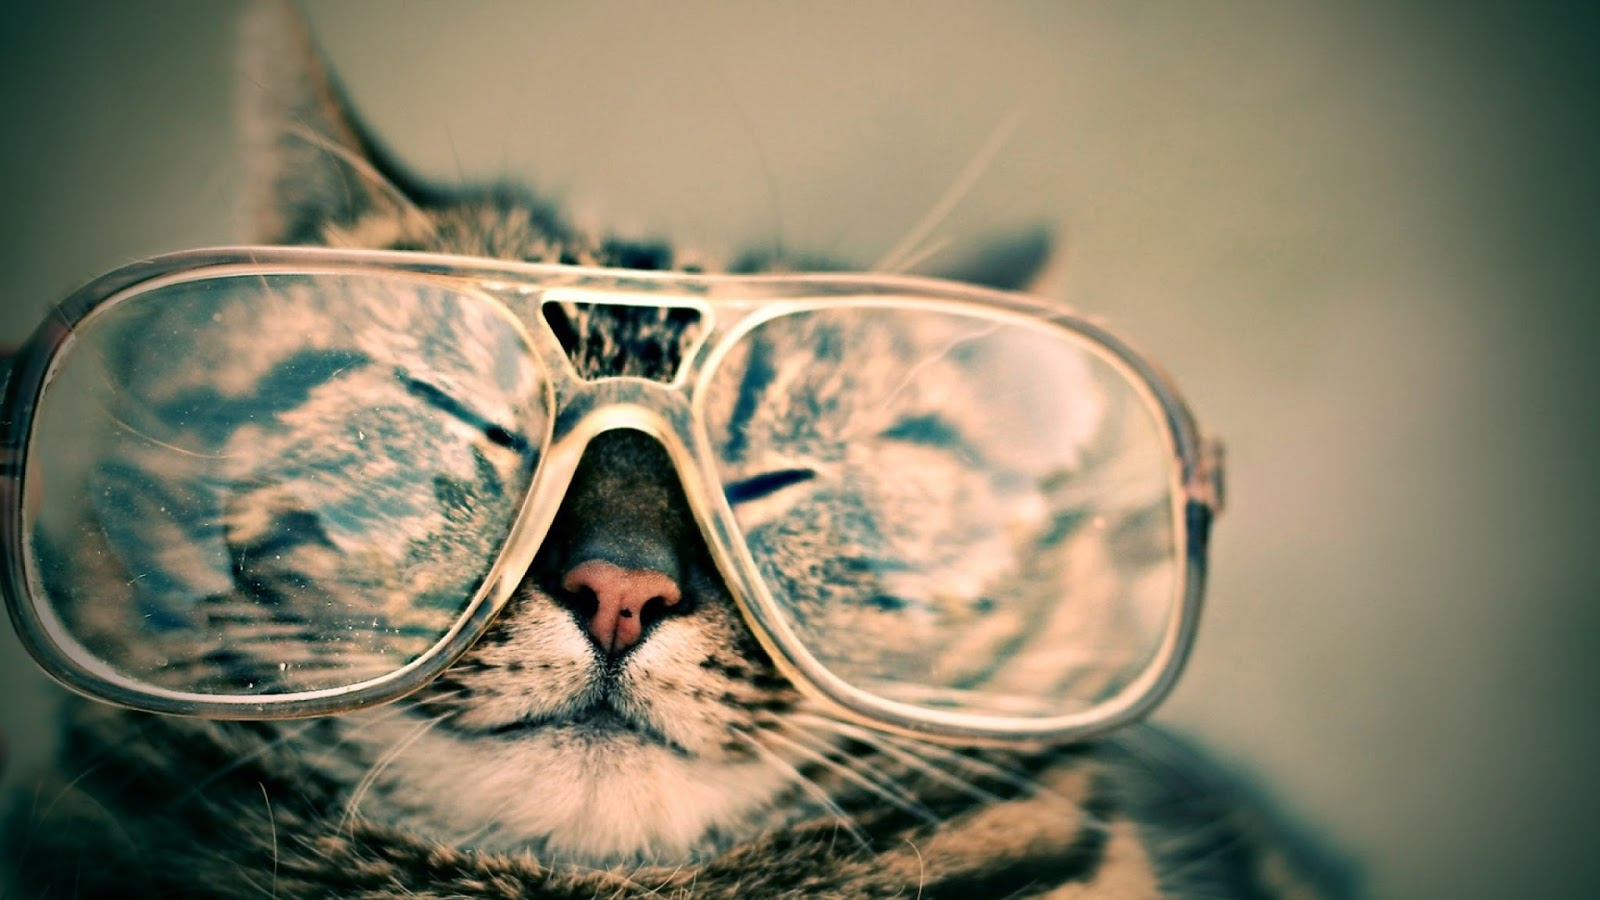 cat in glasses wordly wordly.us expat blog travel living abroad